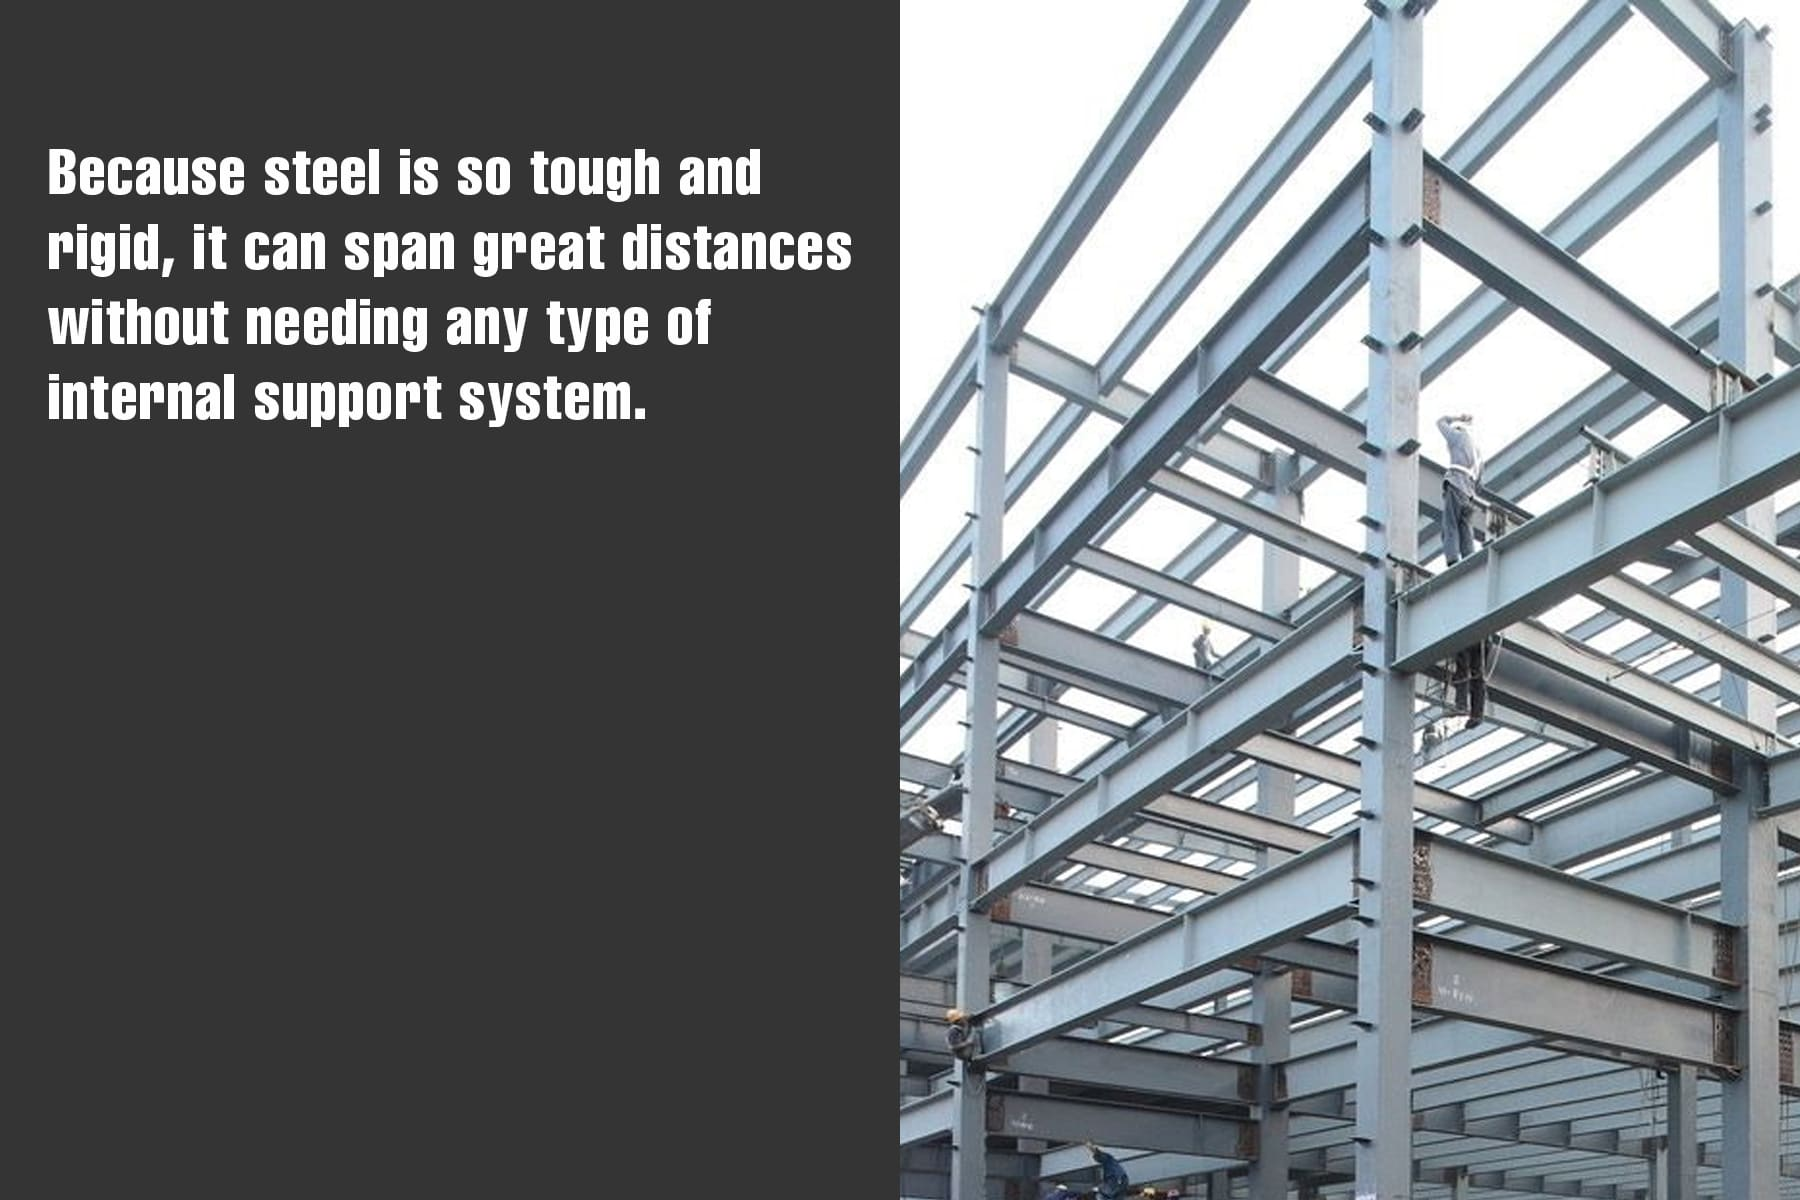 steel can span great distances without needing an internal support system